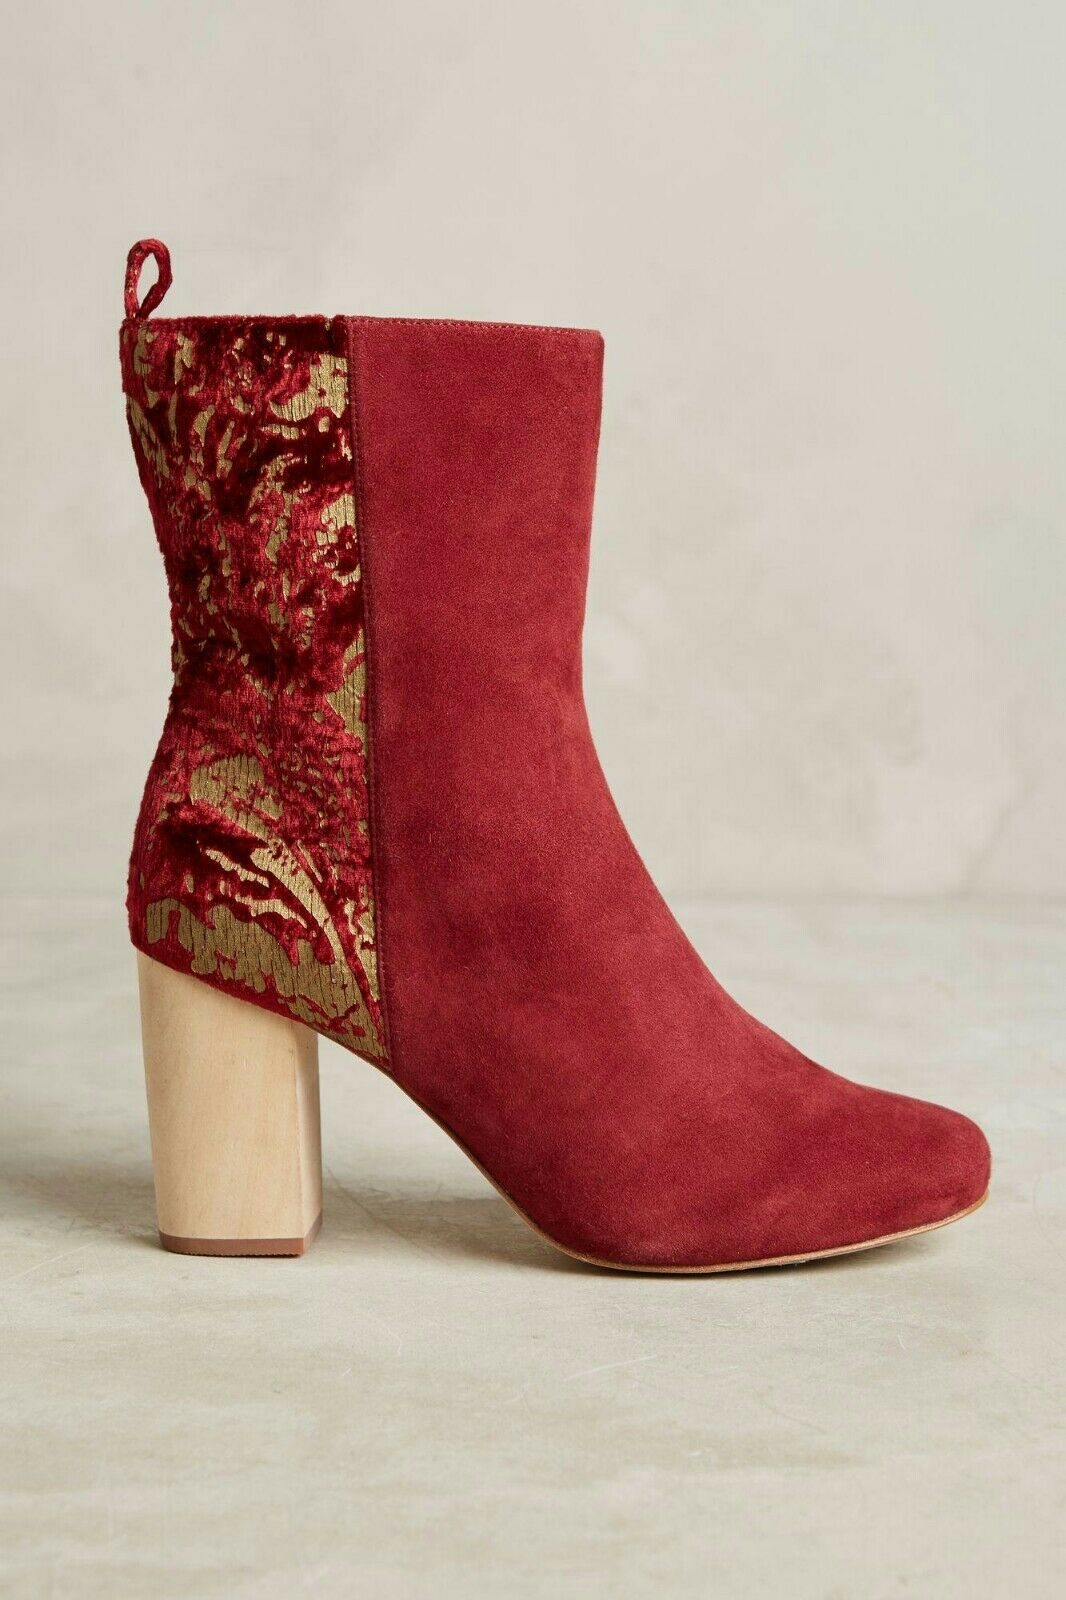 Anthropologie Dav Red Boot by Farylrobin Suede Velvet Holiday Size 38 $178